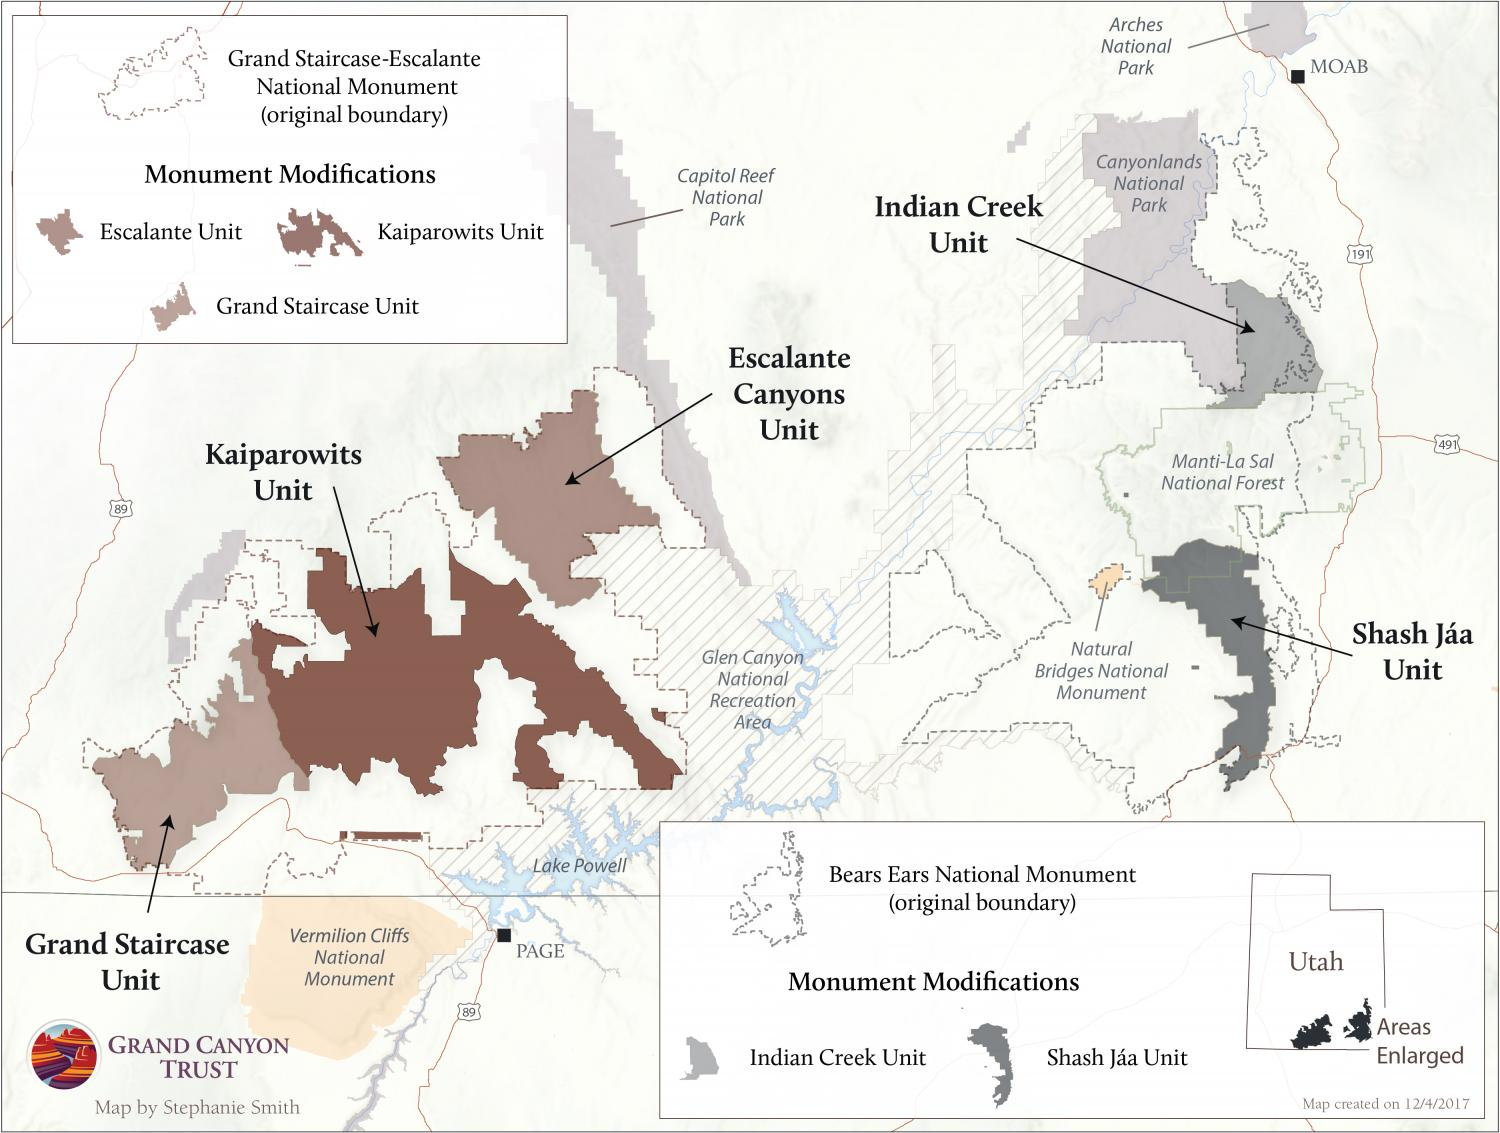 Modifications to Bears Ears and Grand Staircase-Escalante national monuments